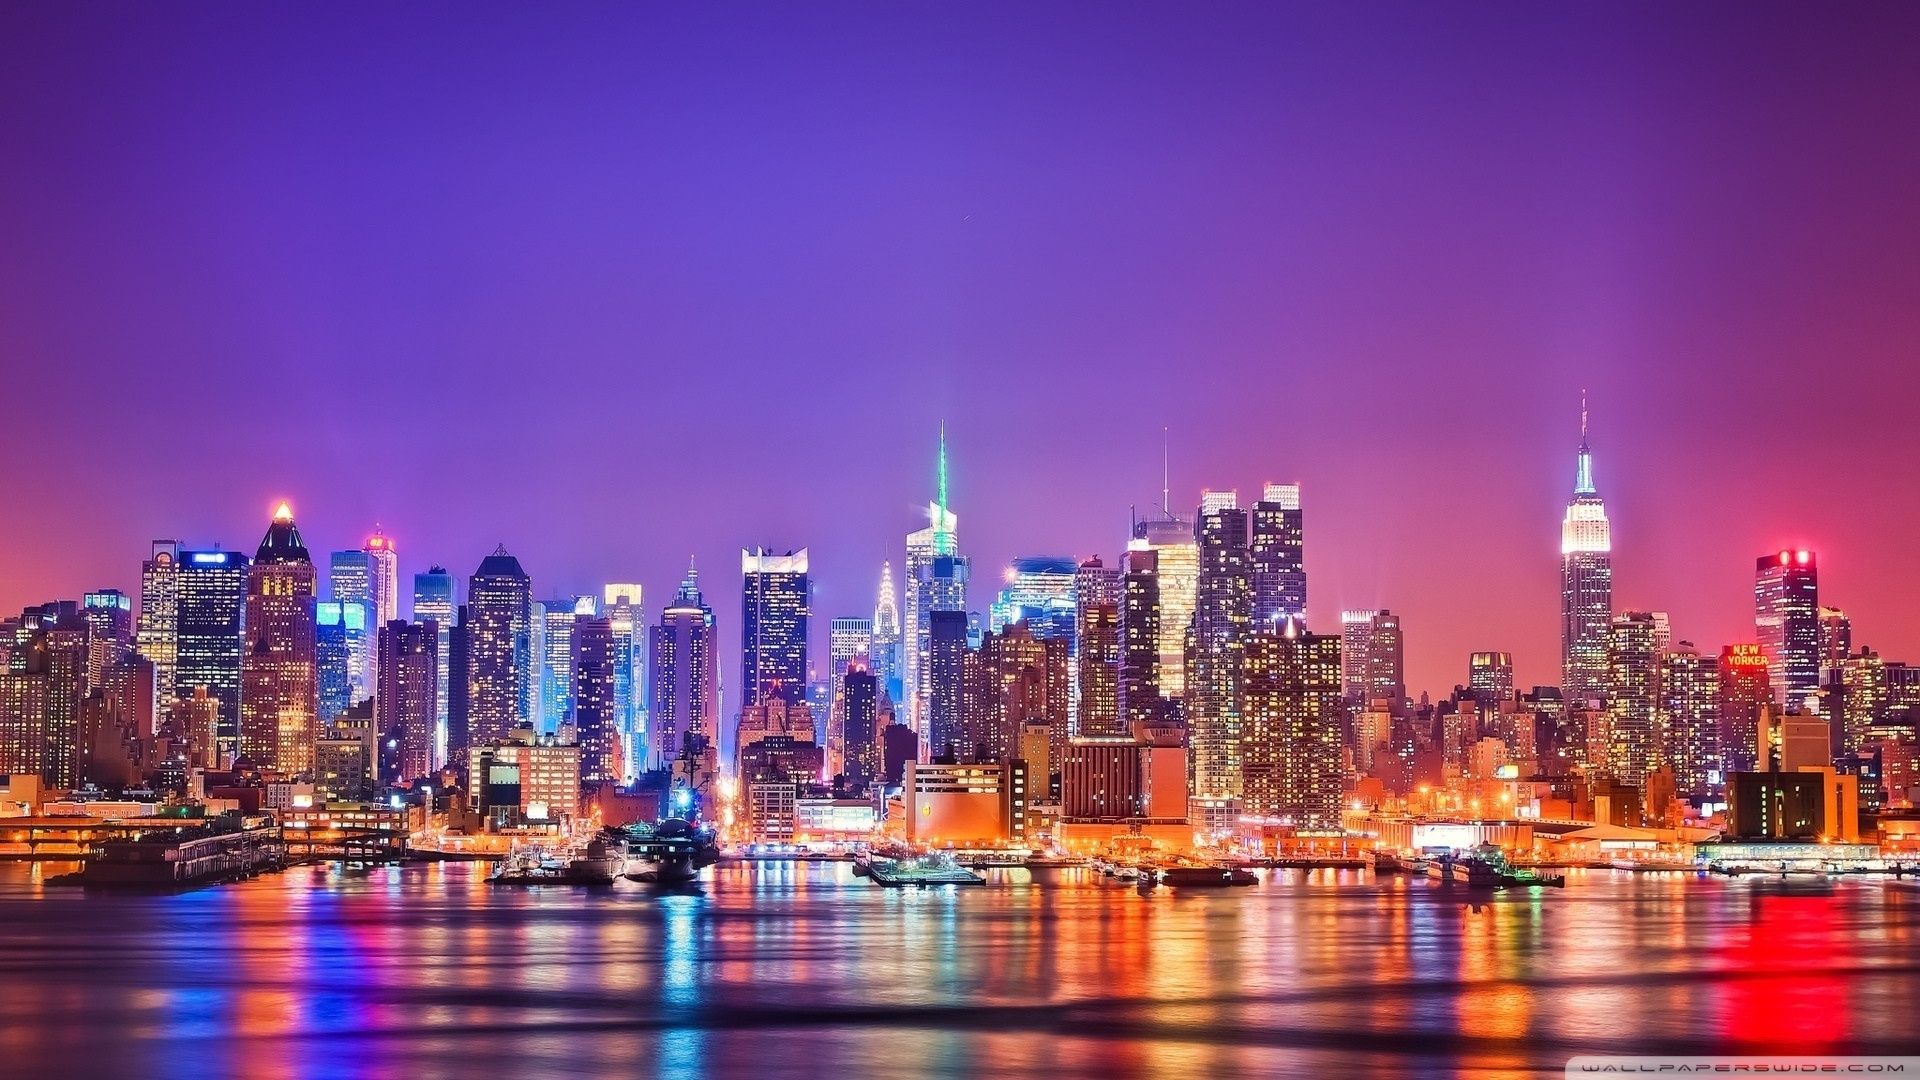 10 New York City Wallpaper 1920X1080 FULL HD 1920x1080 For PC Background 2018